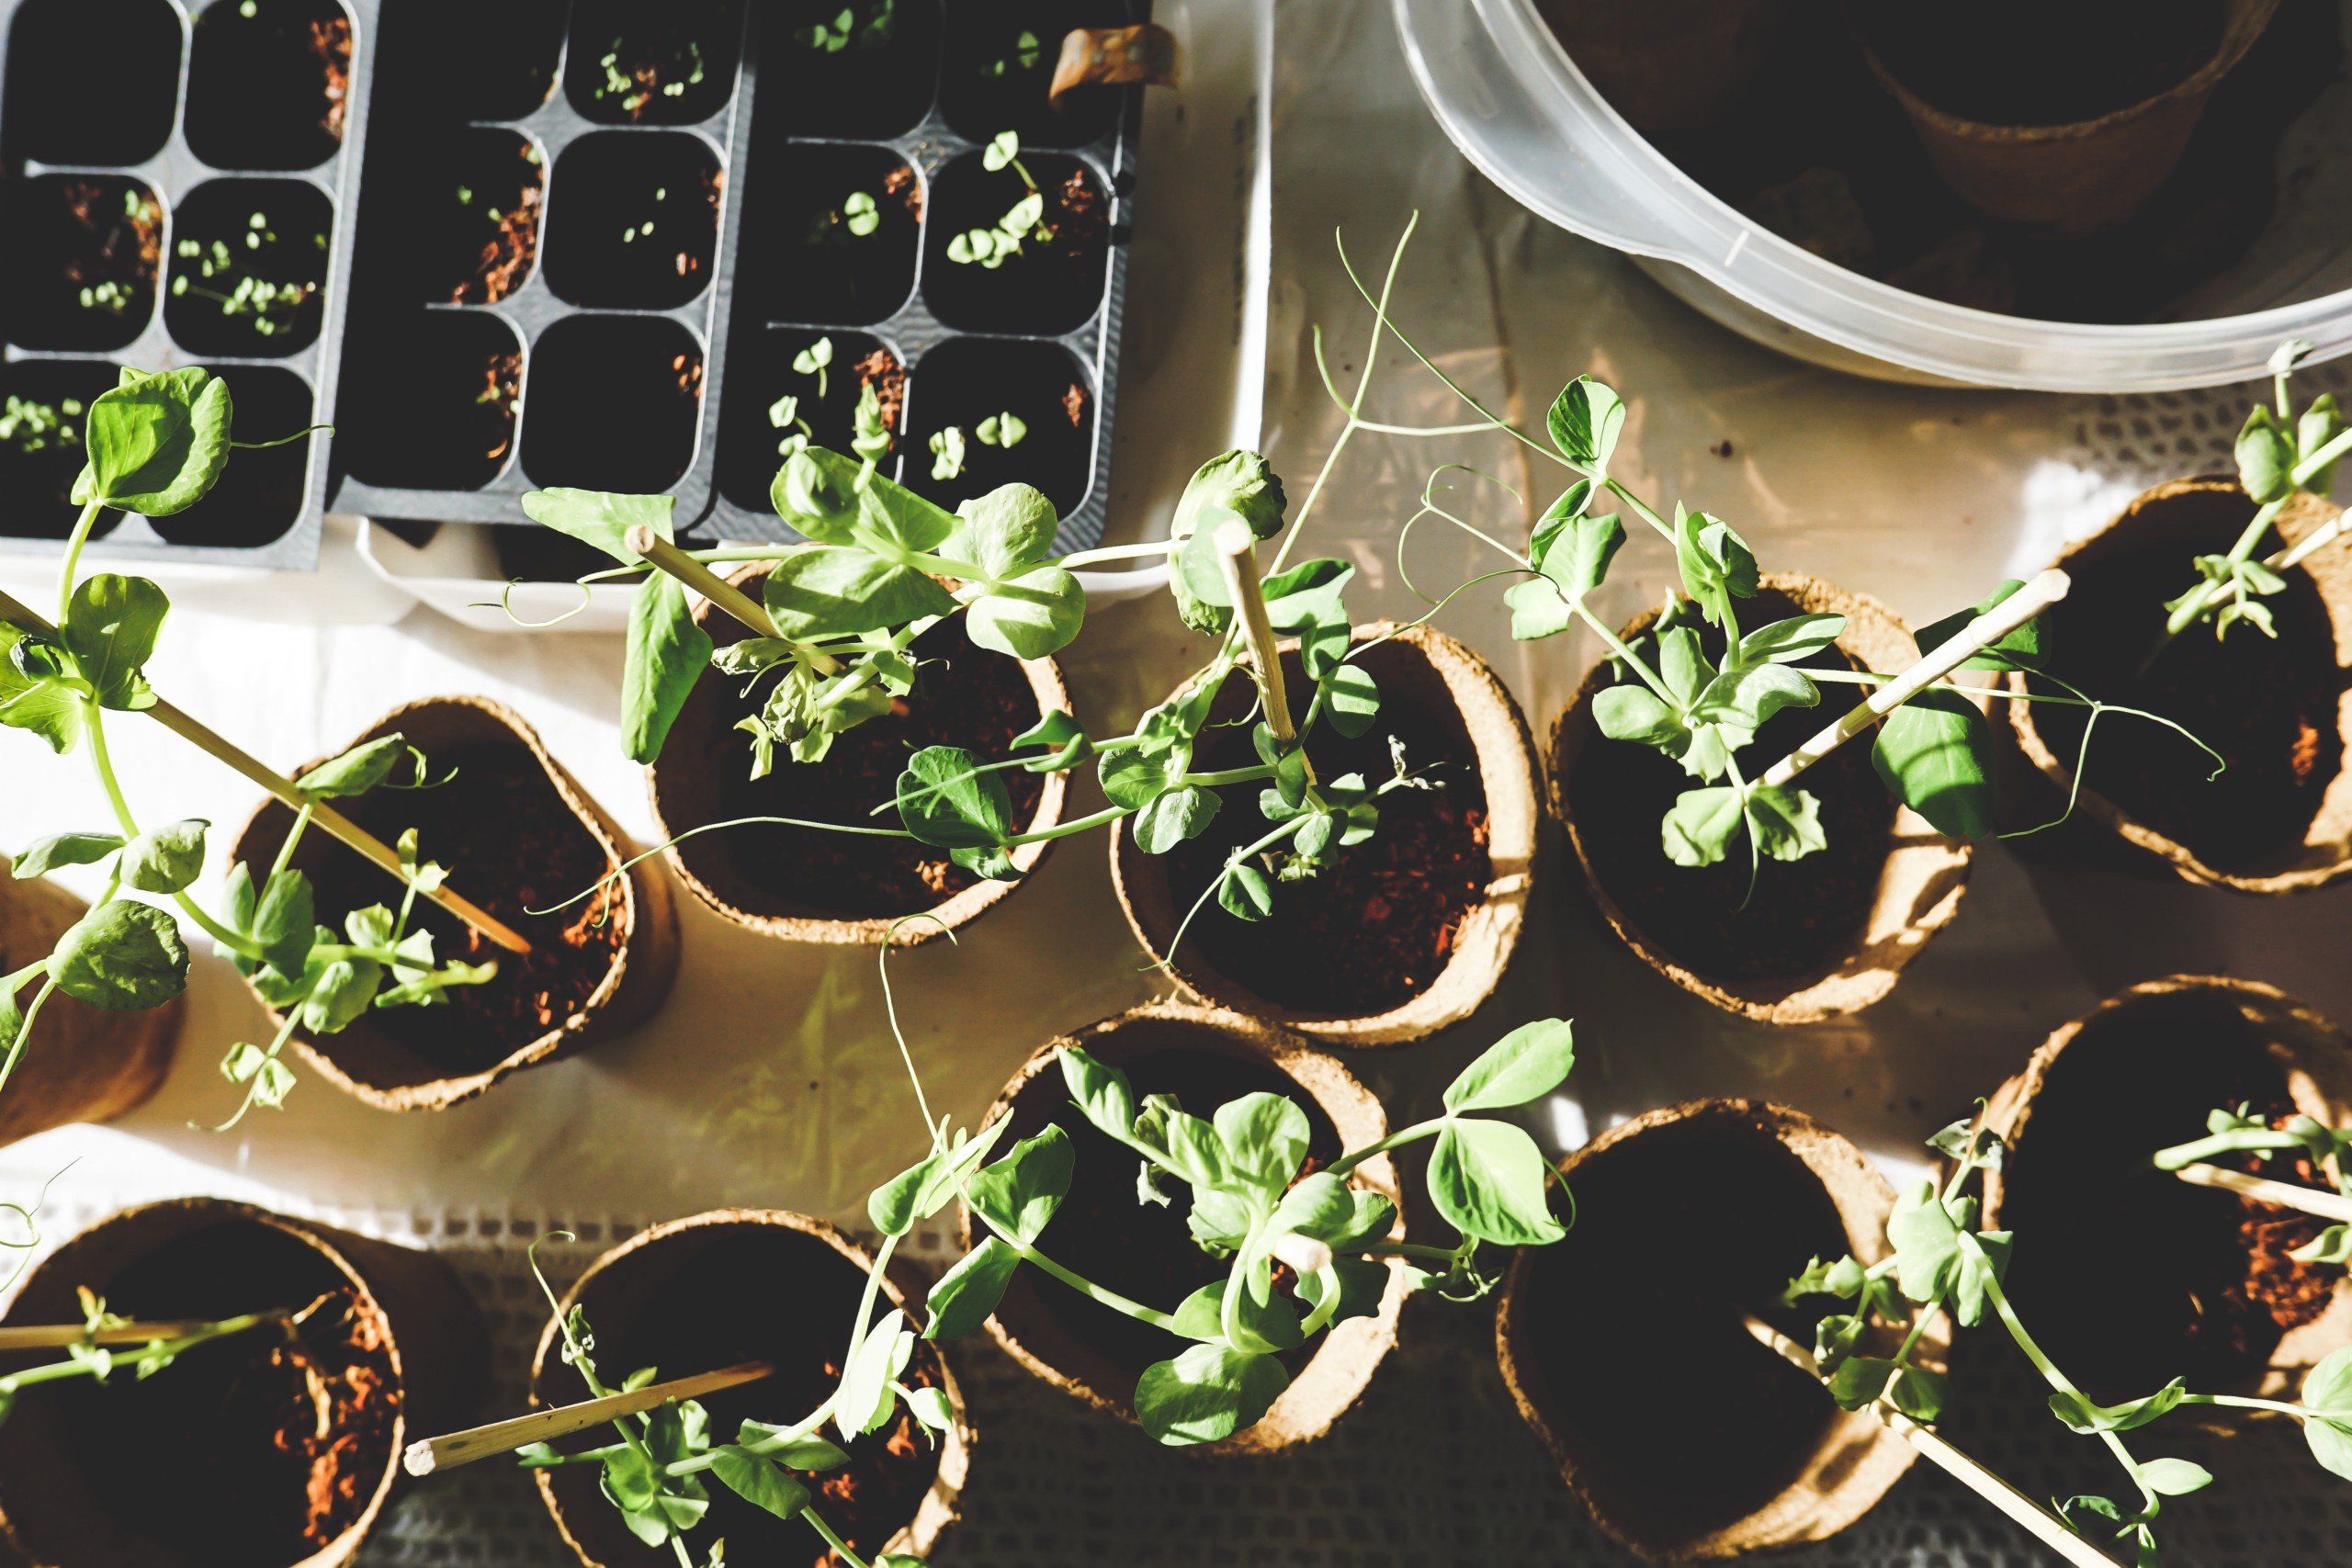 Start Seeds Indoors for a Better Selection